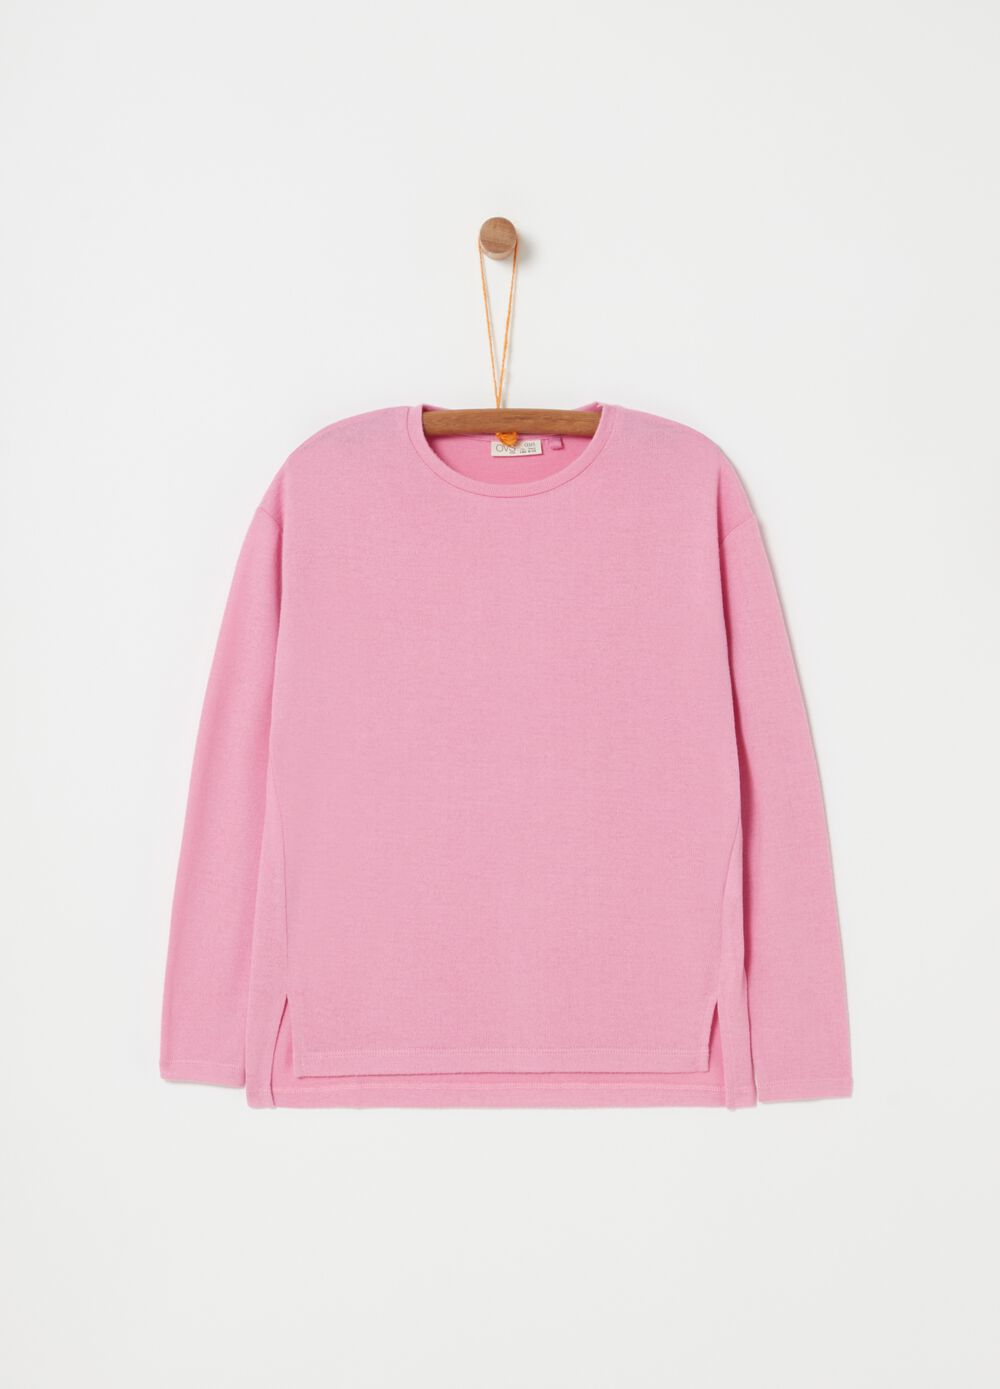 Long-sleeved top with round neck